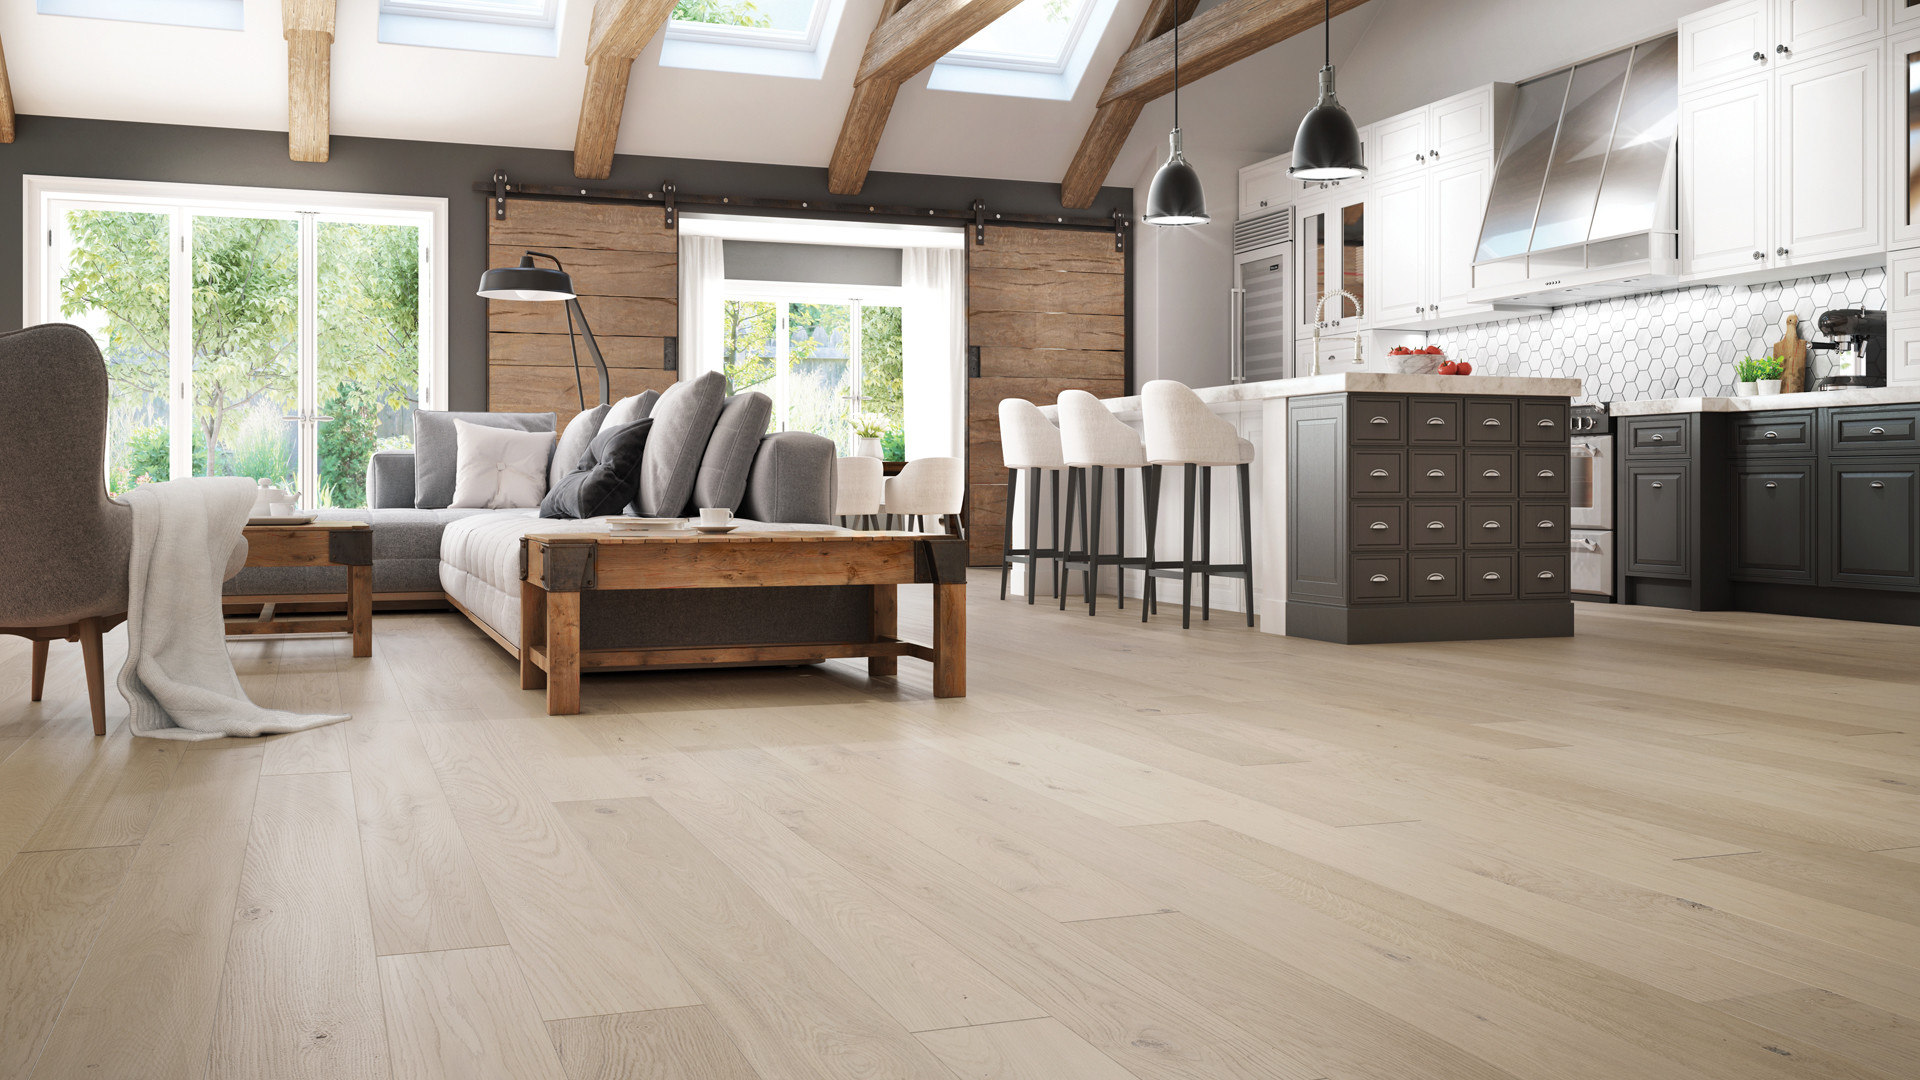 hardwood floor stain colors for white oak of 4 latest hardwood flooring trends of 2018 lauzon flooring regarding this technology brings your hardwood floors and well being to a new level by improving indoor air quality by up to 85 and decomposing up to 99 6 of